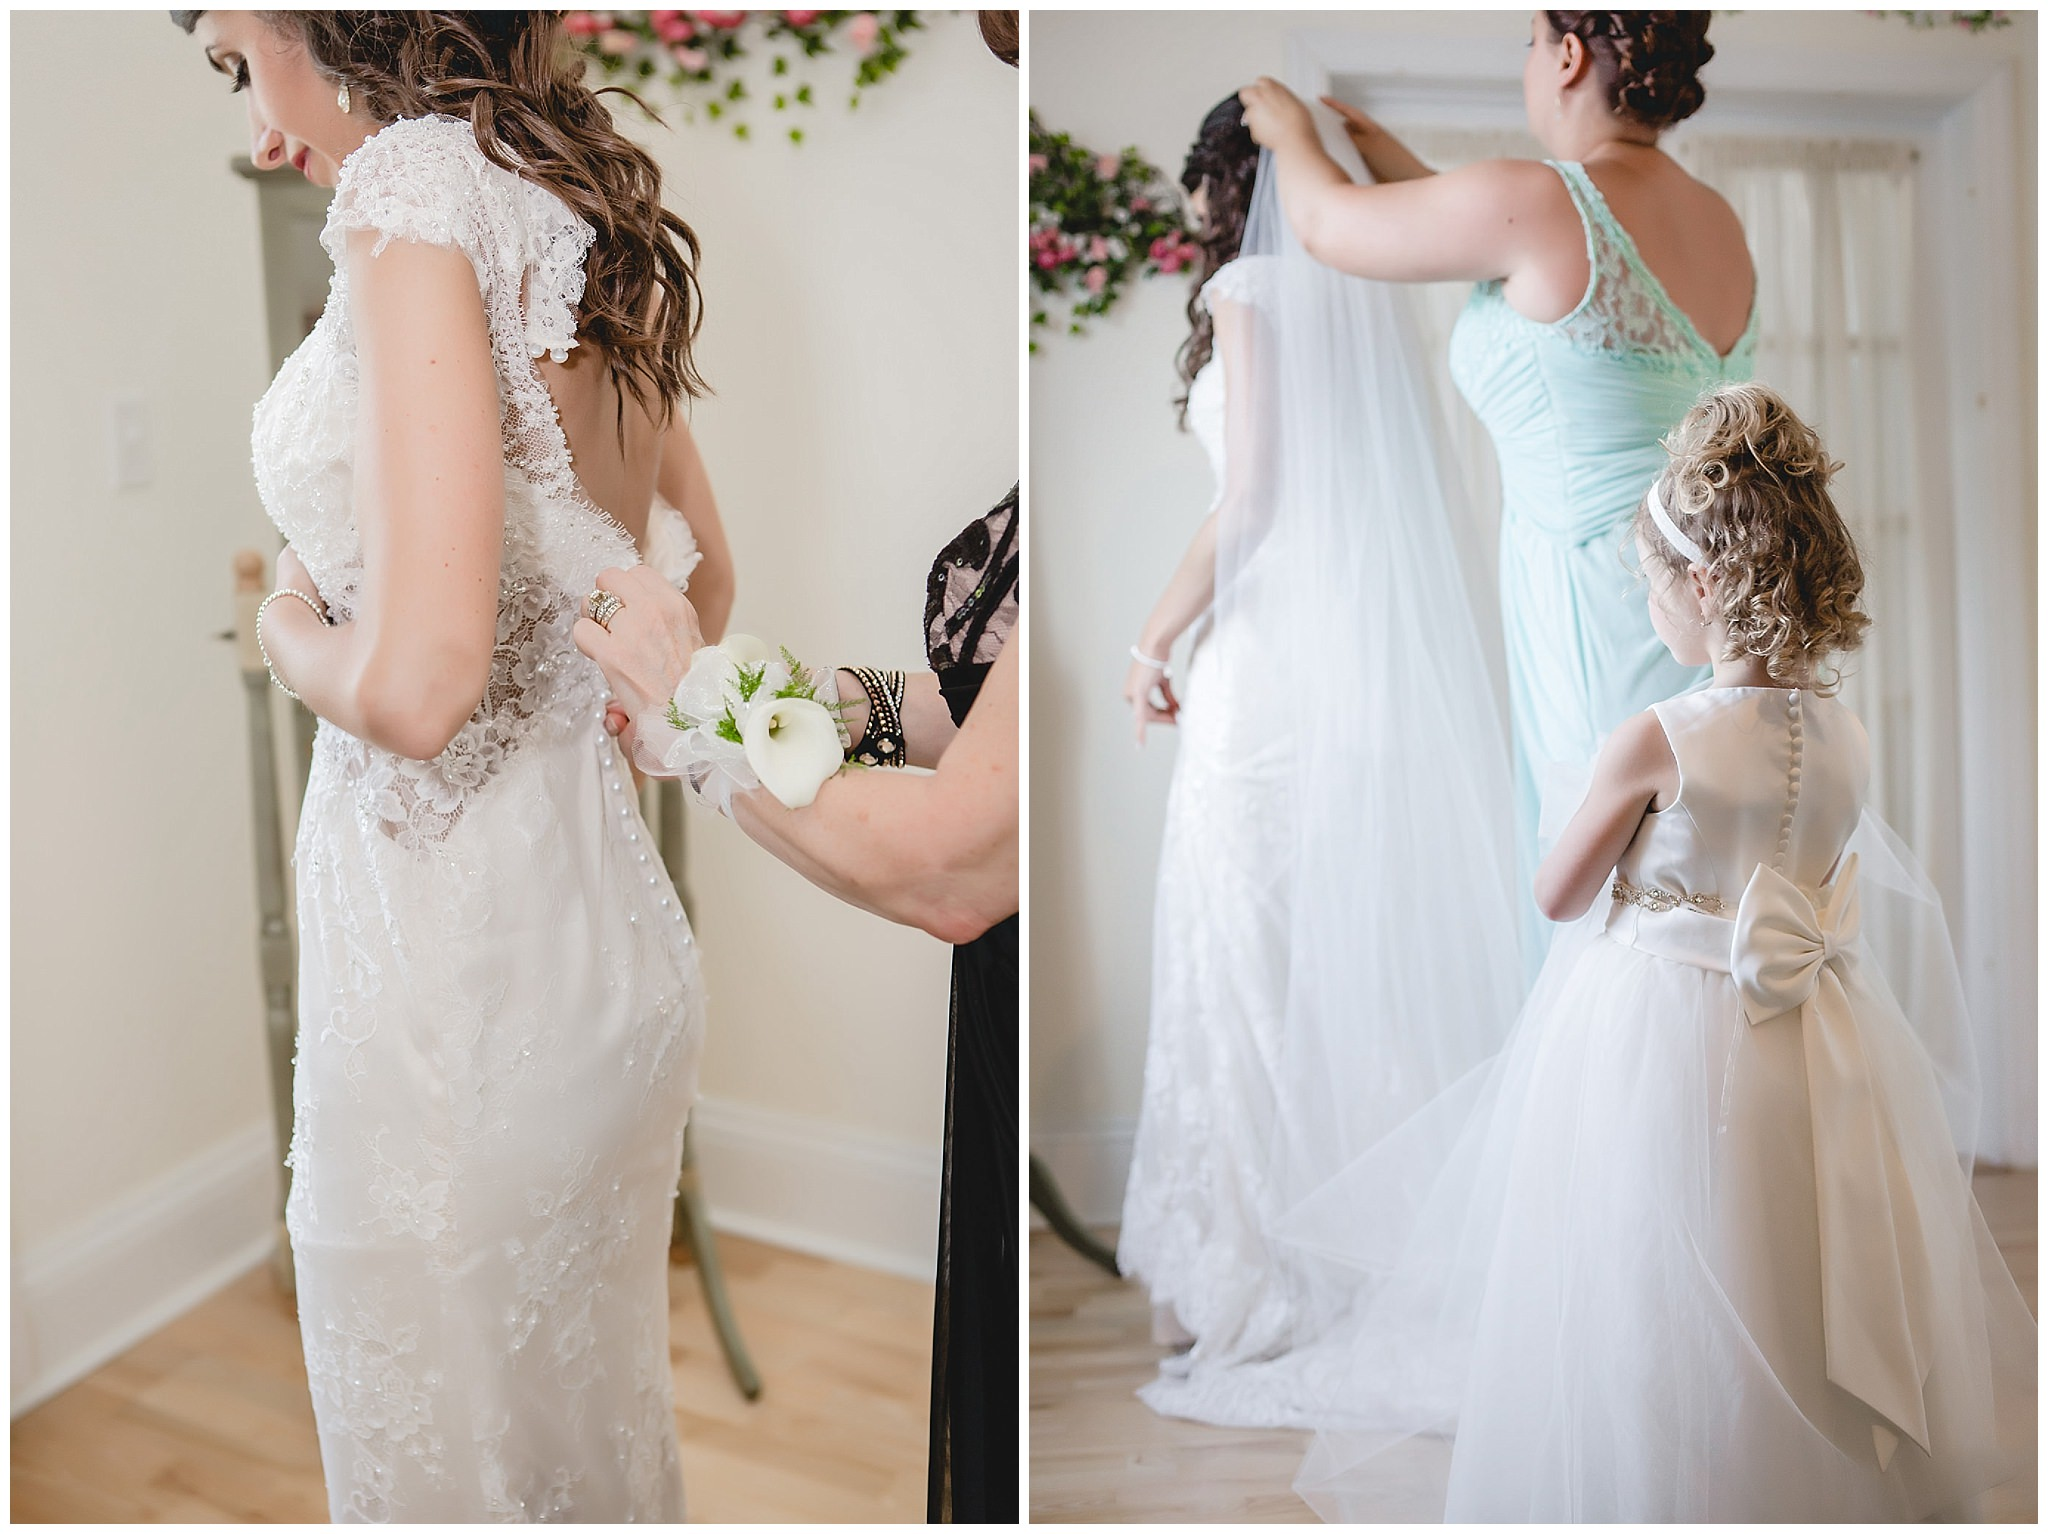 Flower girl, matron of honor, and mother of the bride help her get into her dress